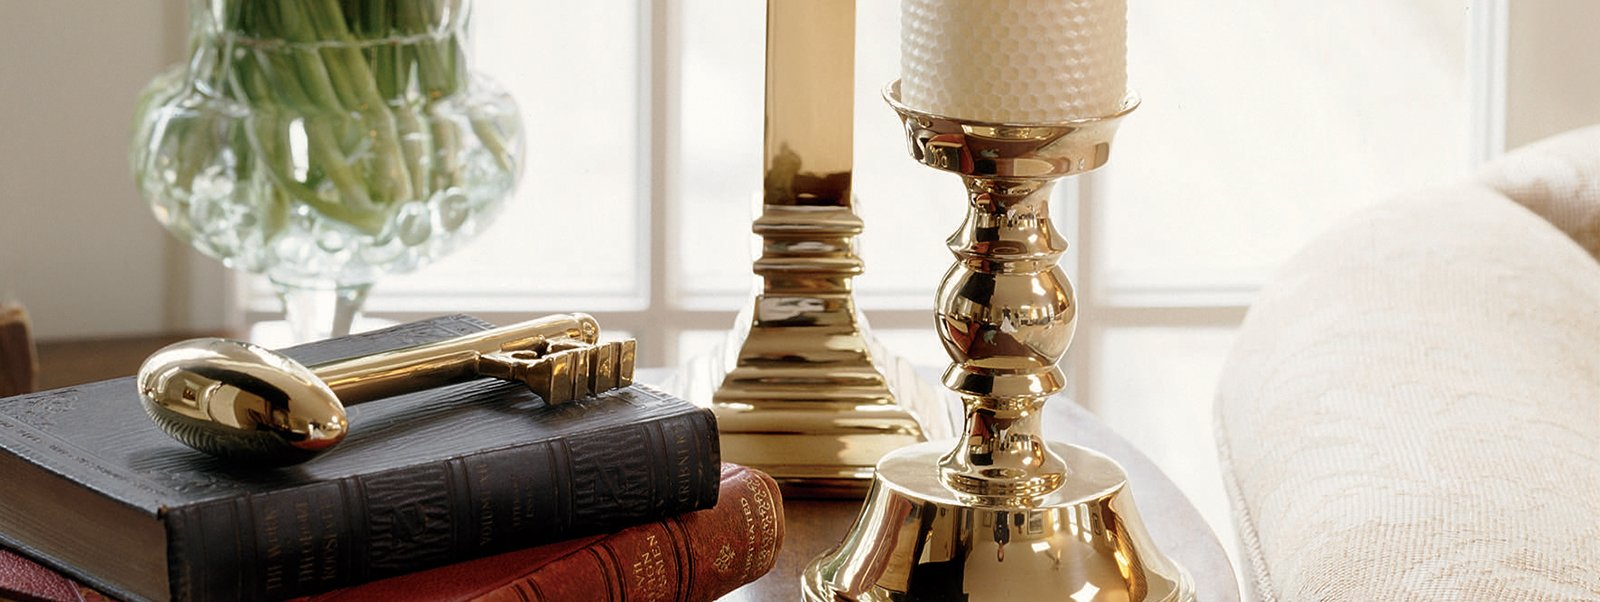 Jefferson Brass Candlesticks. Interior Design Jefferson Brass Company. Traditional, classic interior design. Brass design and home decor